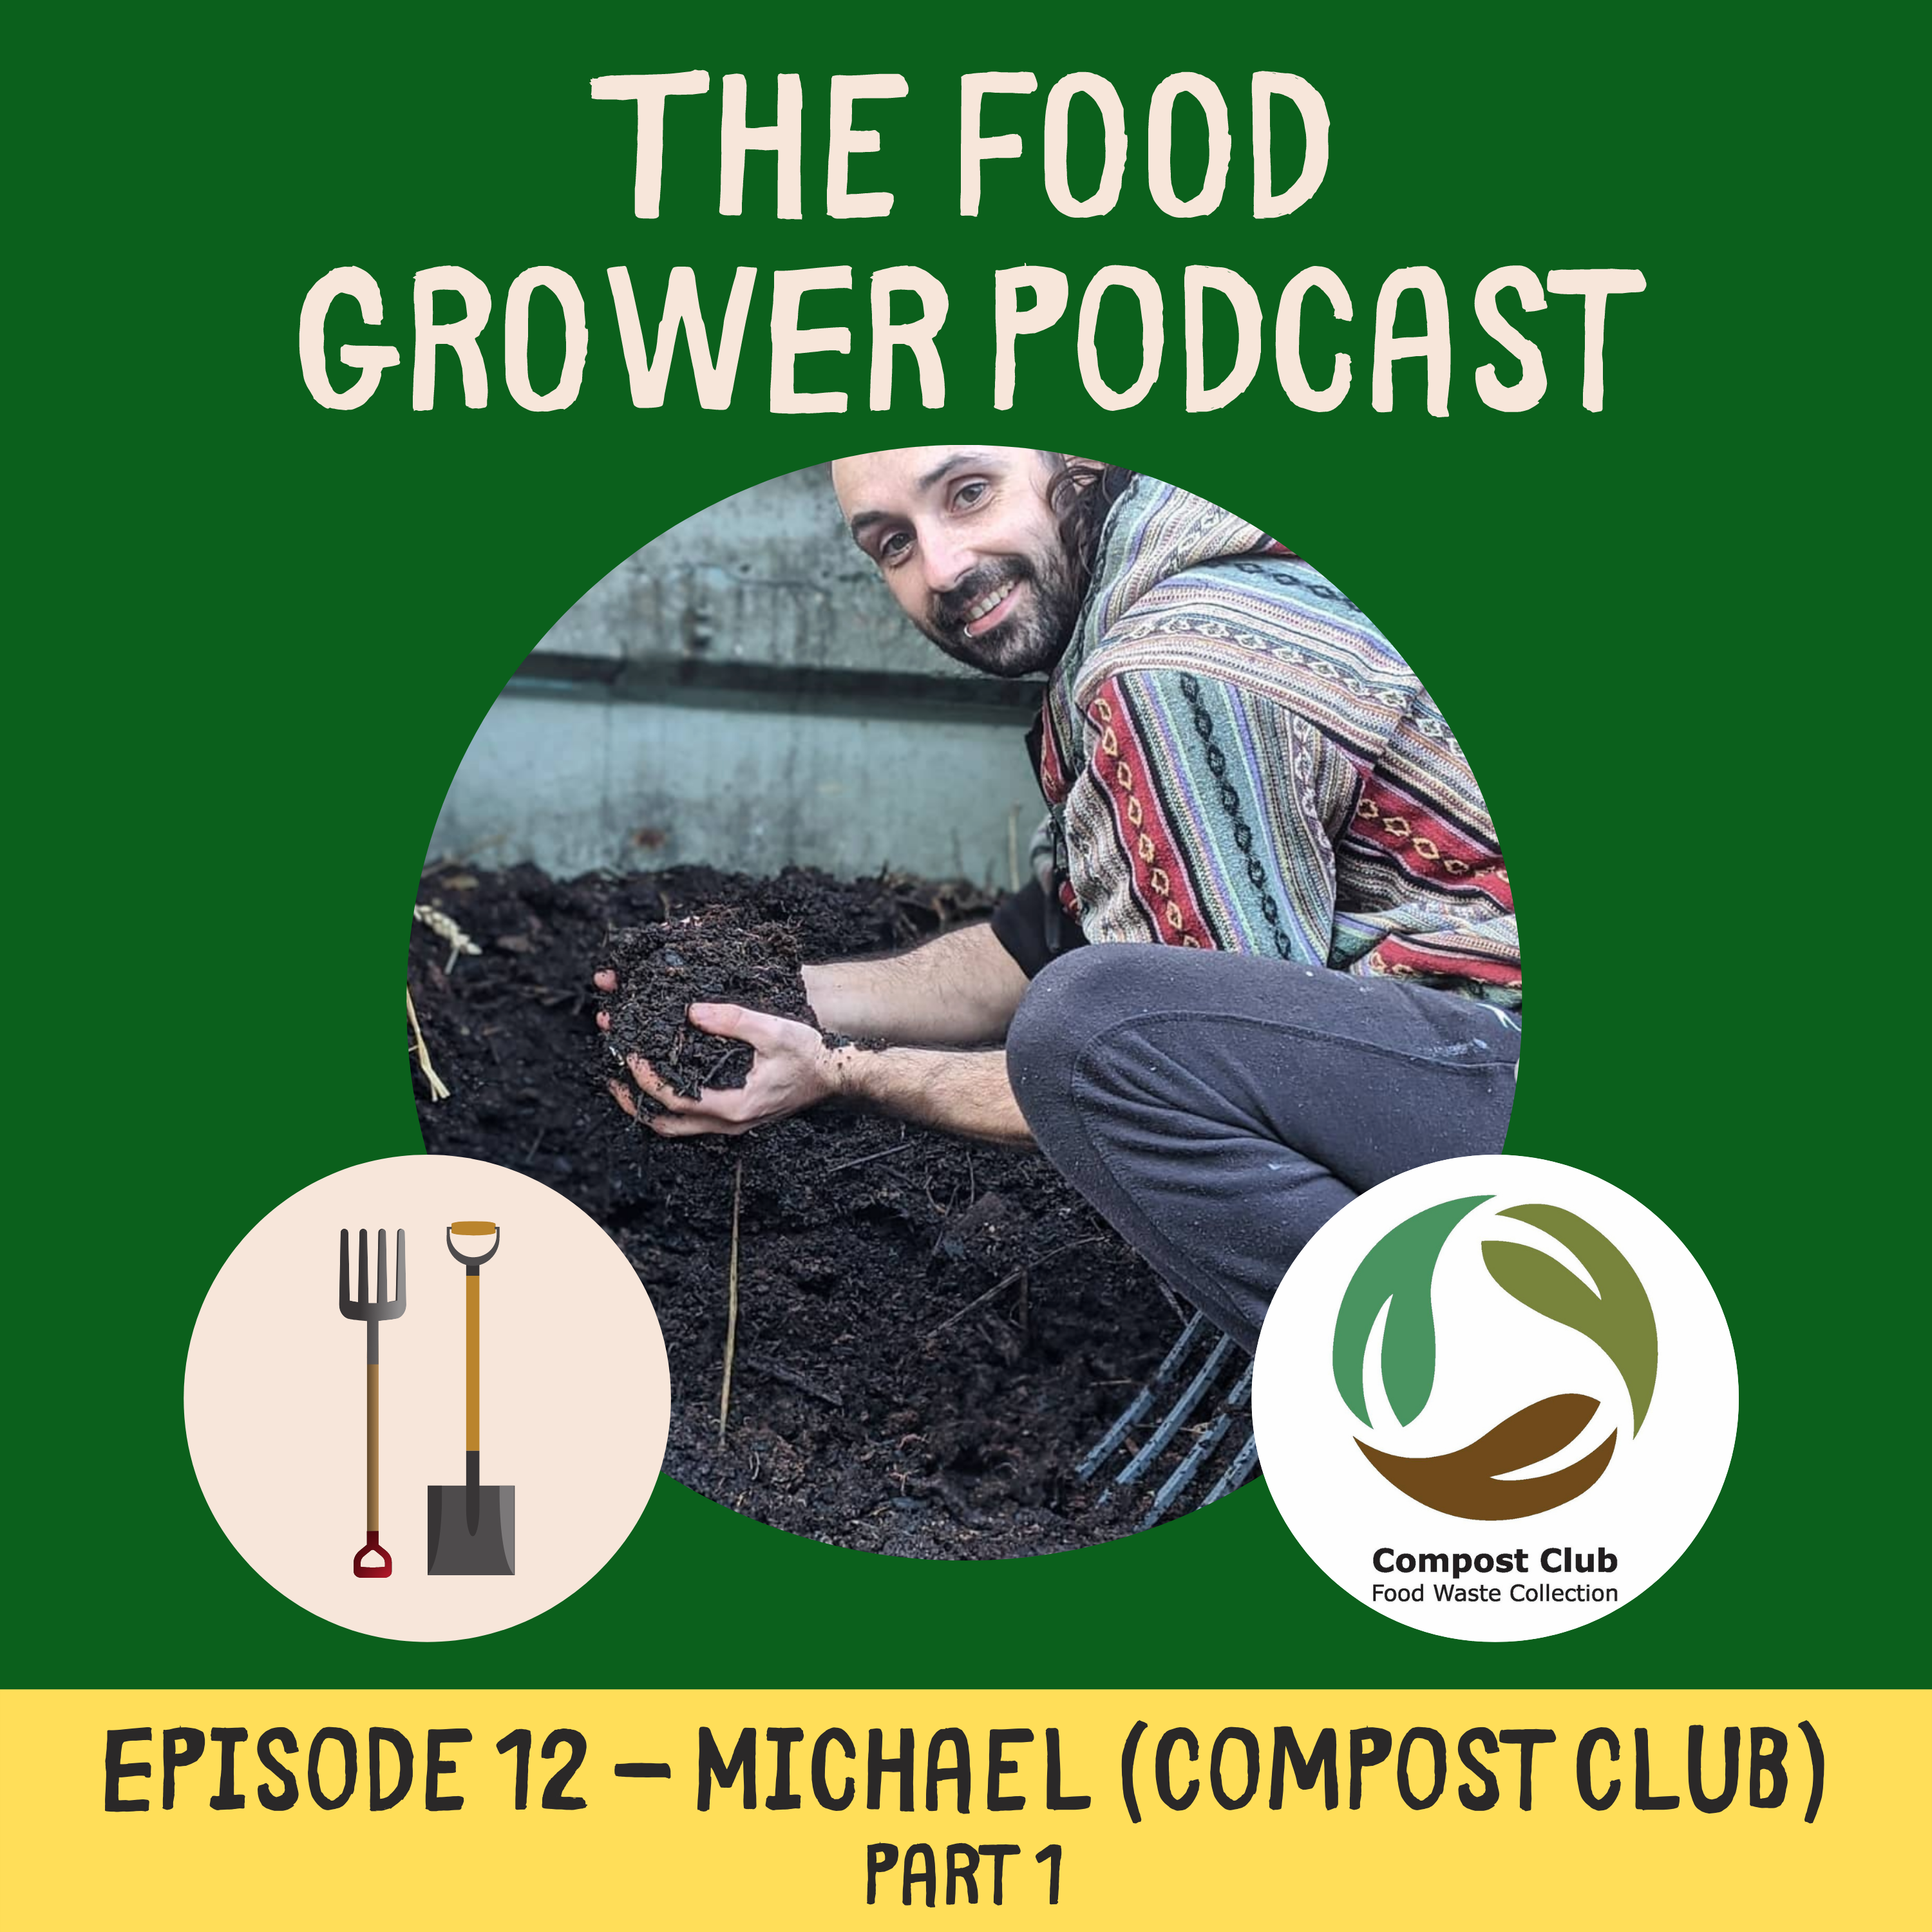 Food Grower Podcast Michael Compost Club